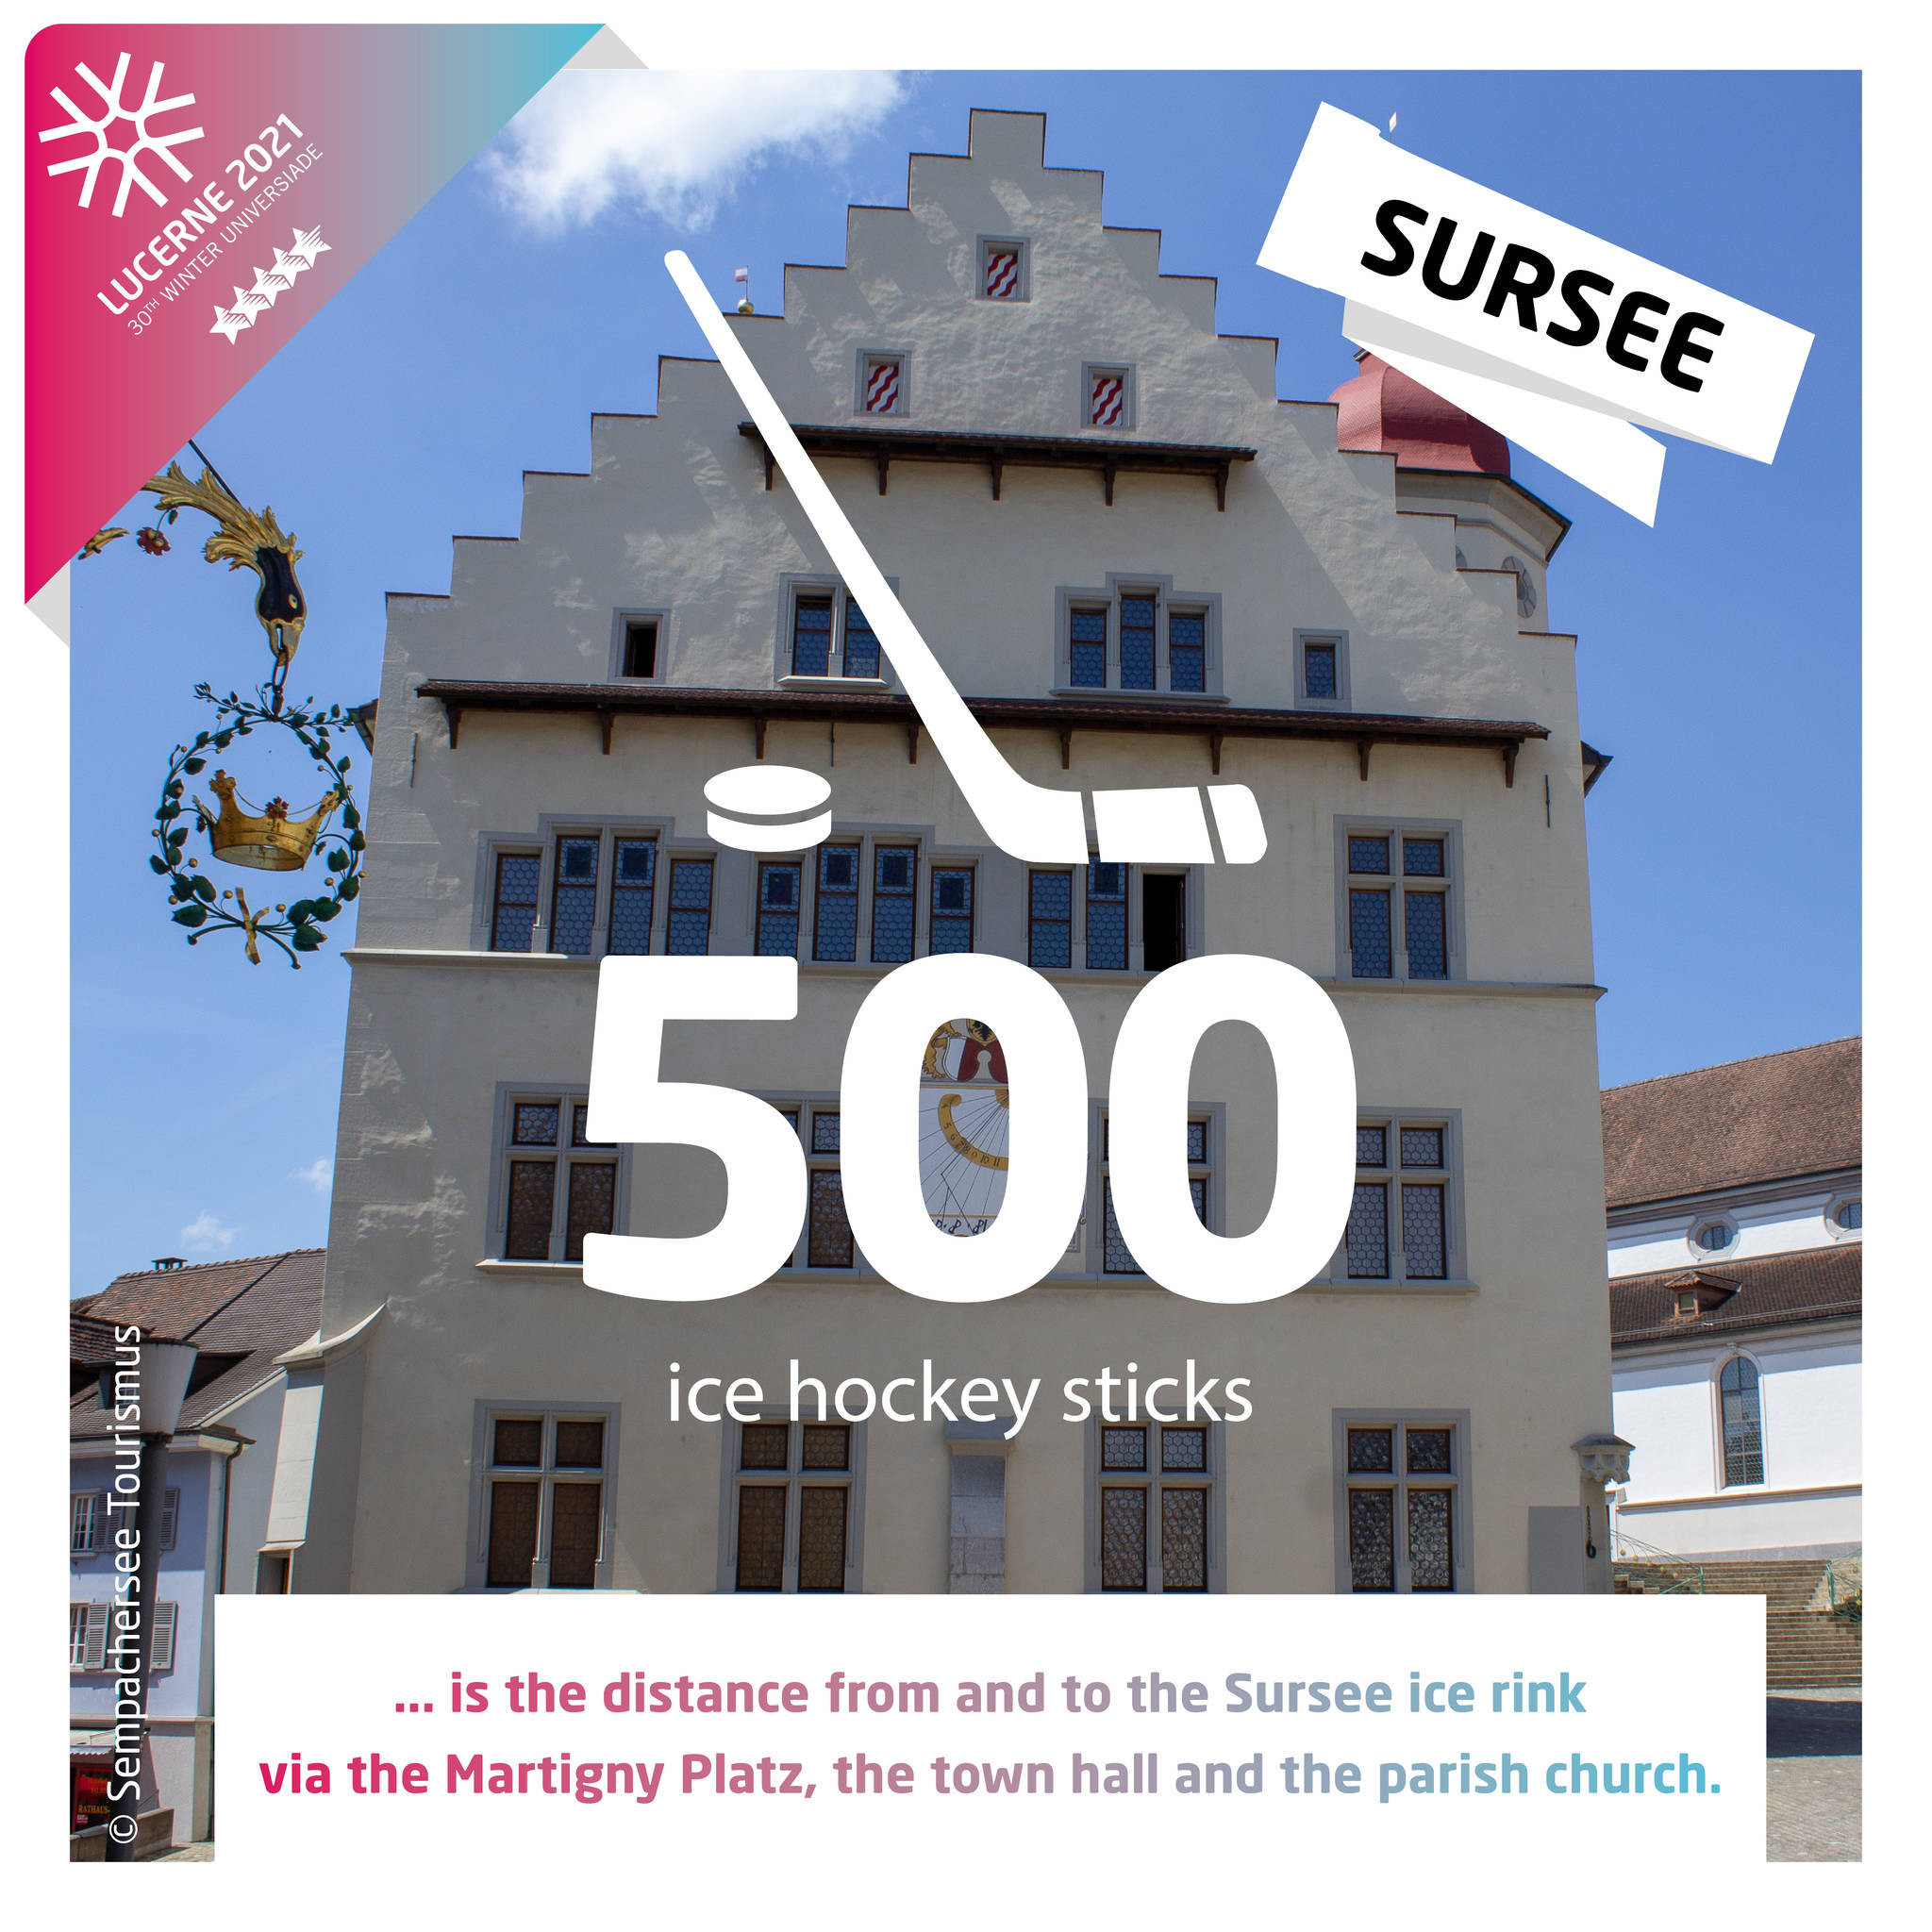 Lucerne 2021 has released various facts related to the number 500 ©Sempachersee Tourismus